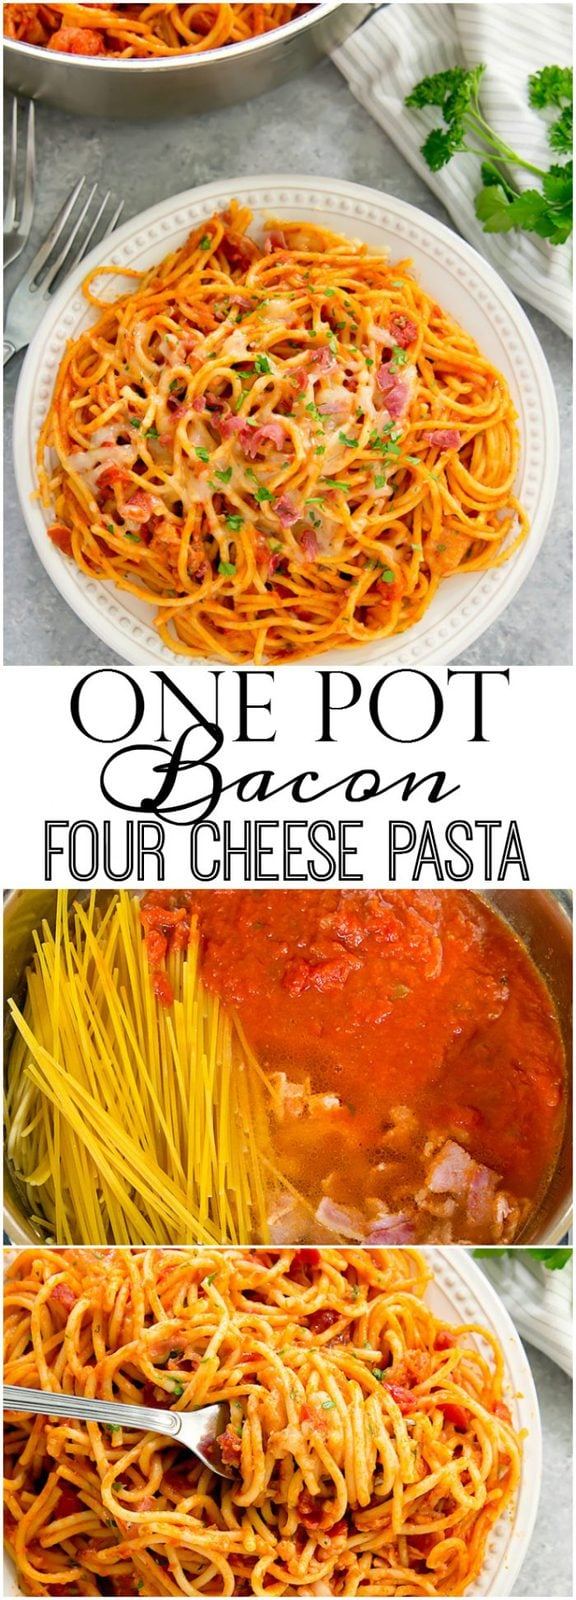 One Pot Bacon Four Cheese Pasta